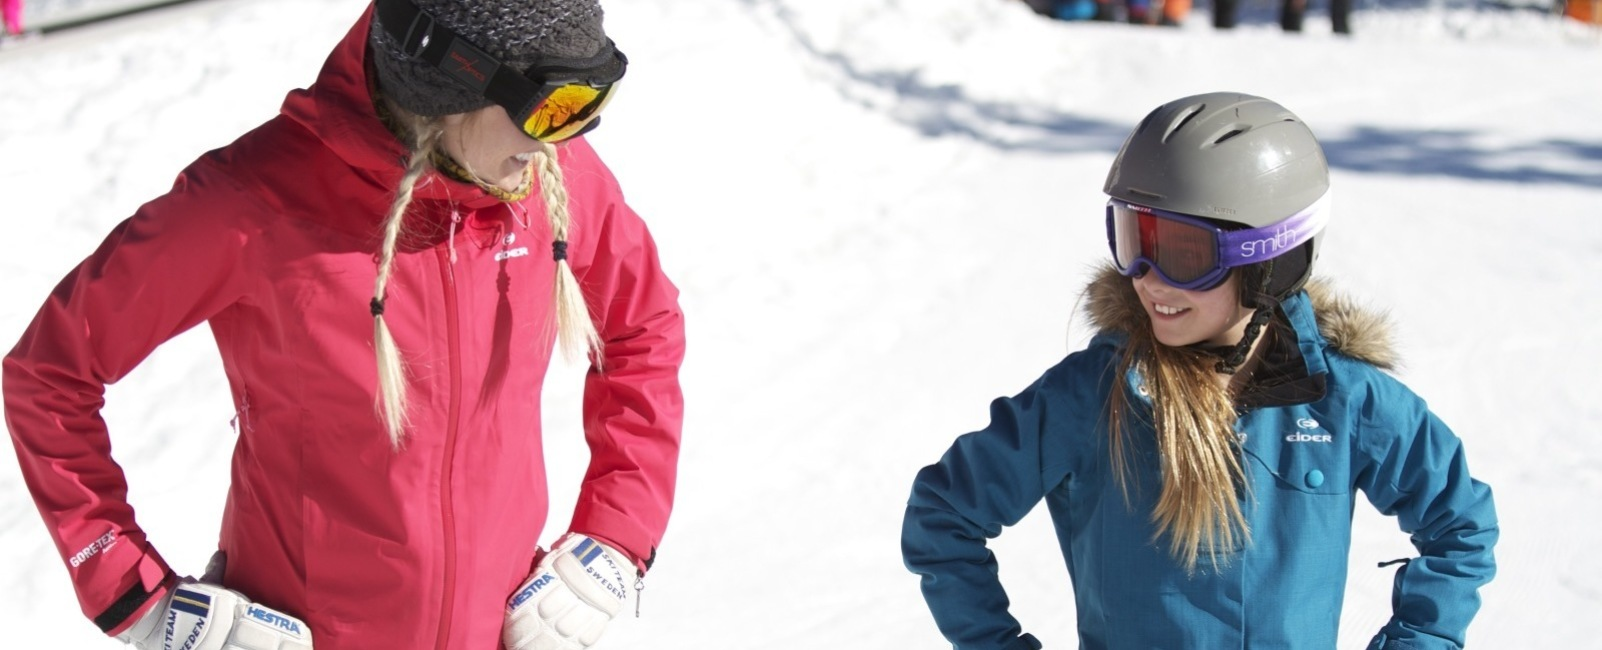 Everything You Should Know About Ski Lessons